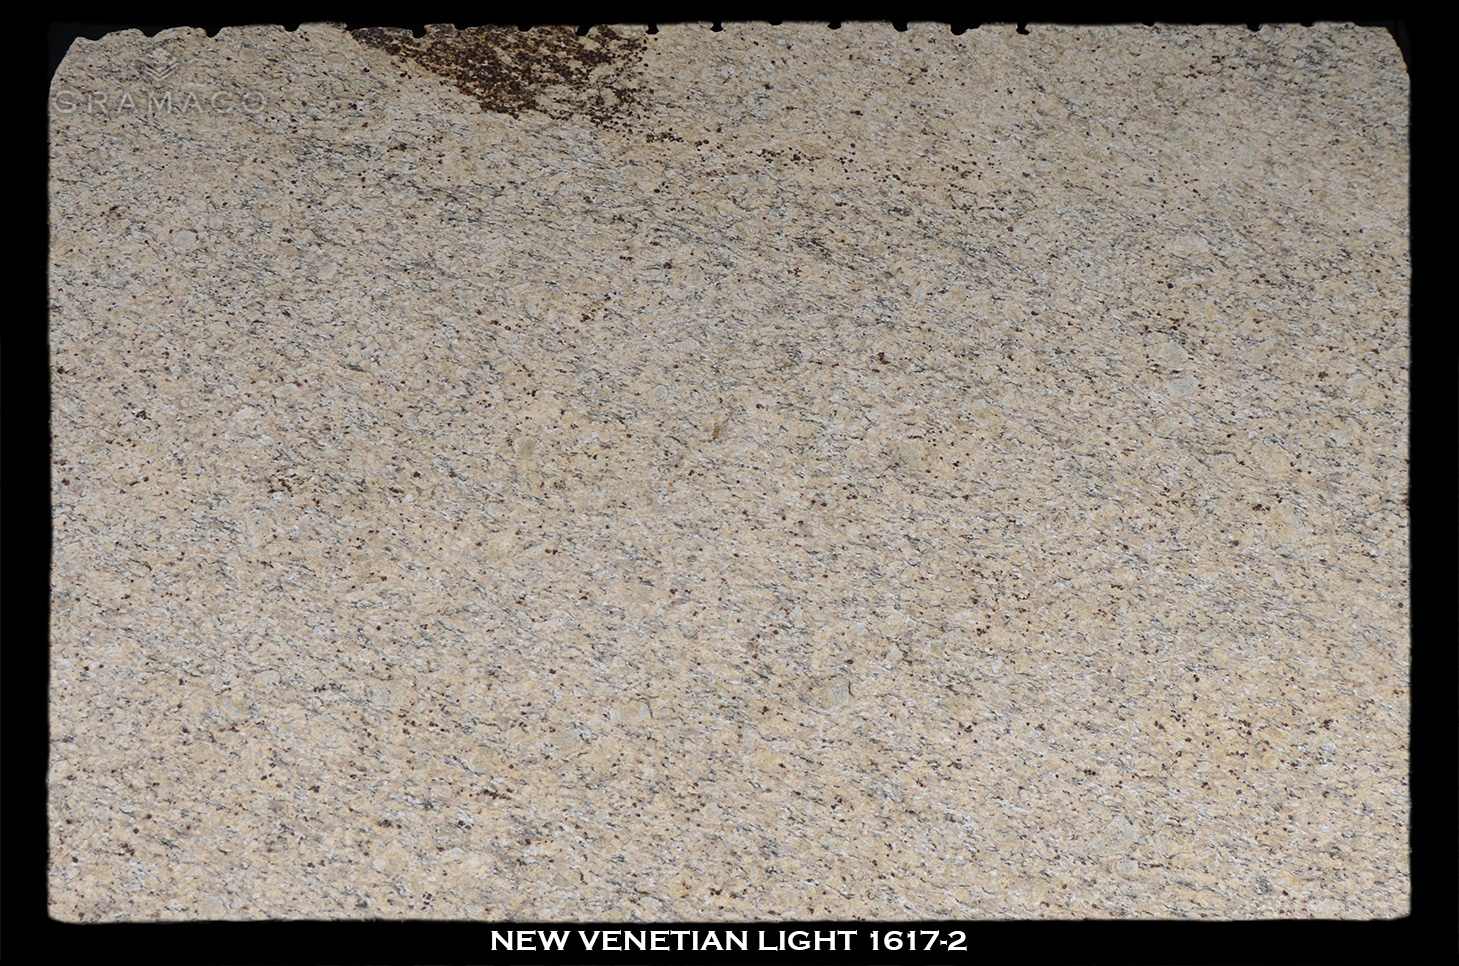 NEW-VENETIAN-LIGHT-1617-2-slab